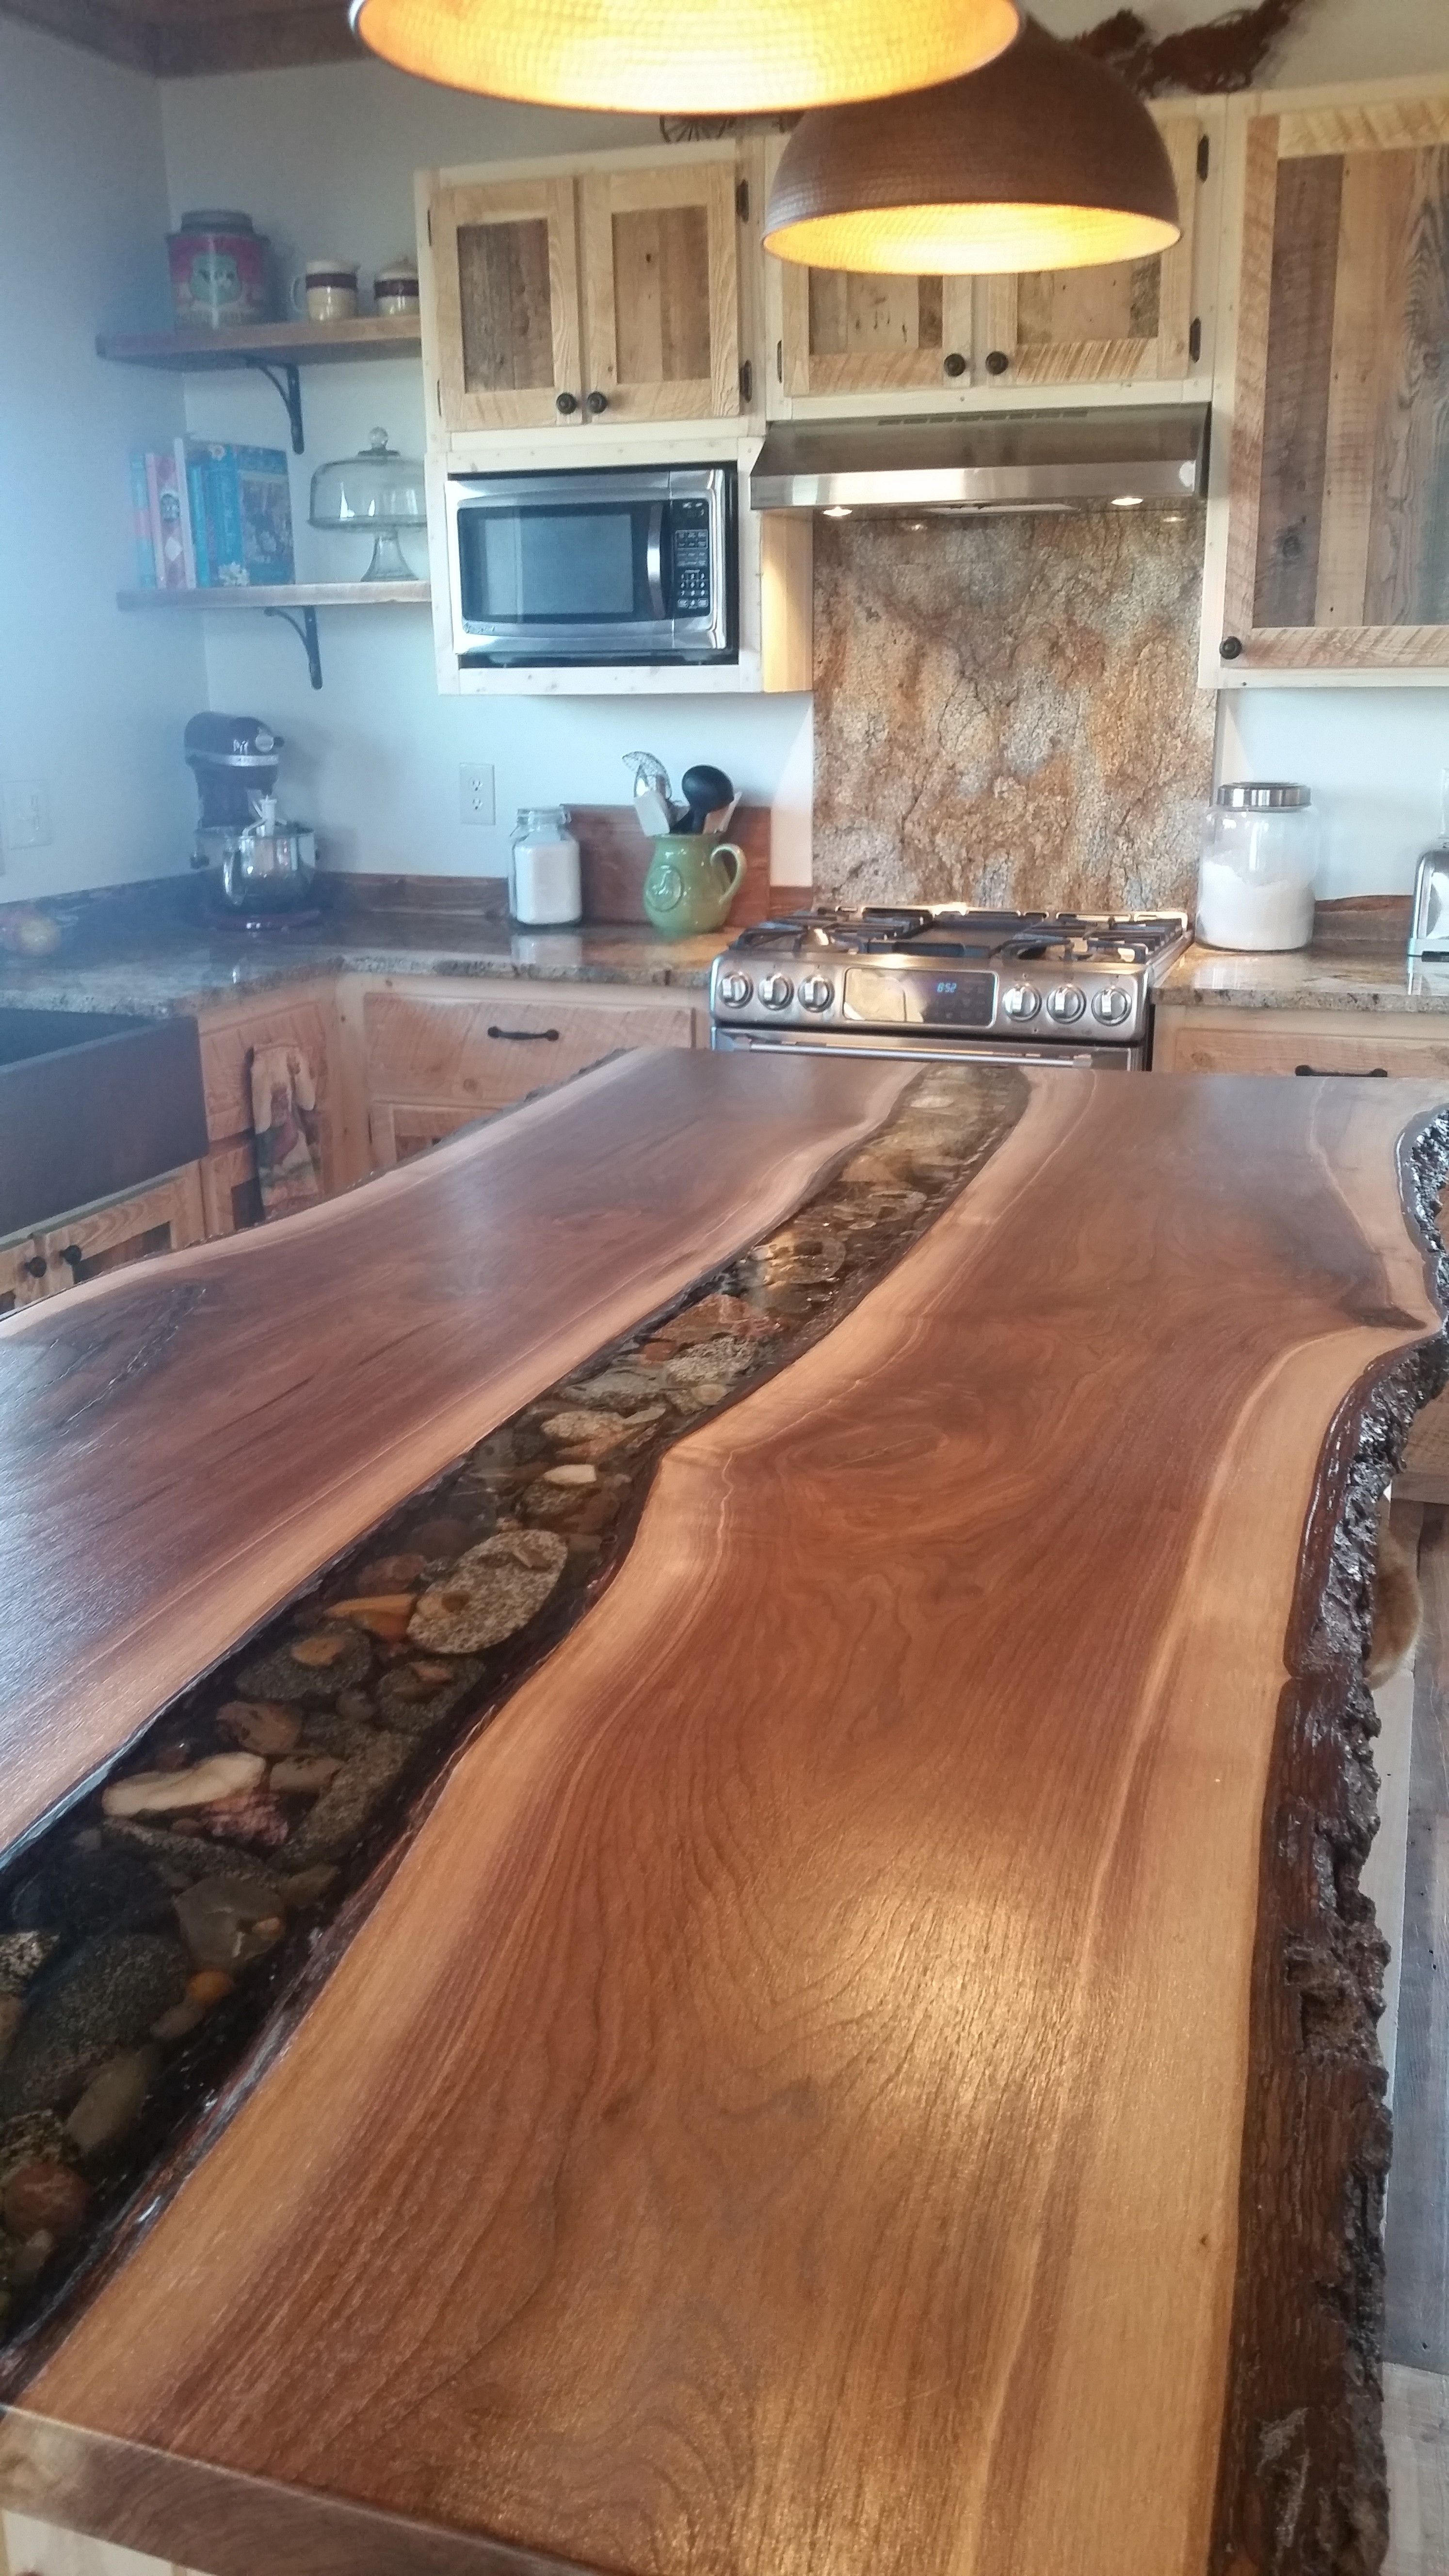 Rustic Kitchen Island Live Edge Walnut Slab With River Rock By